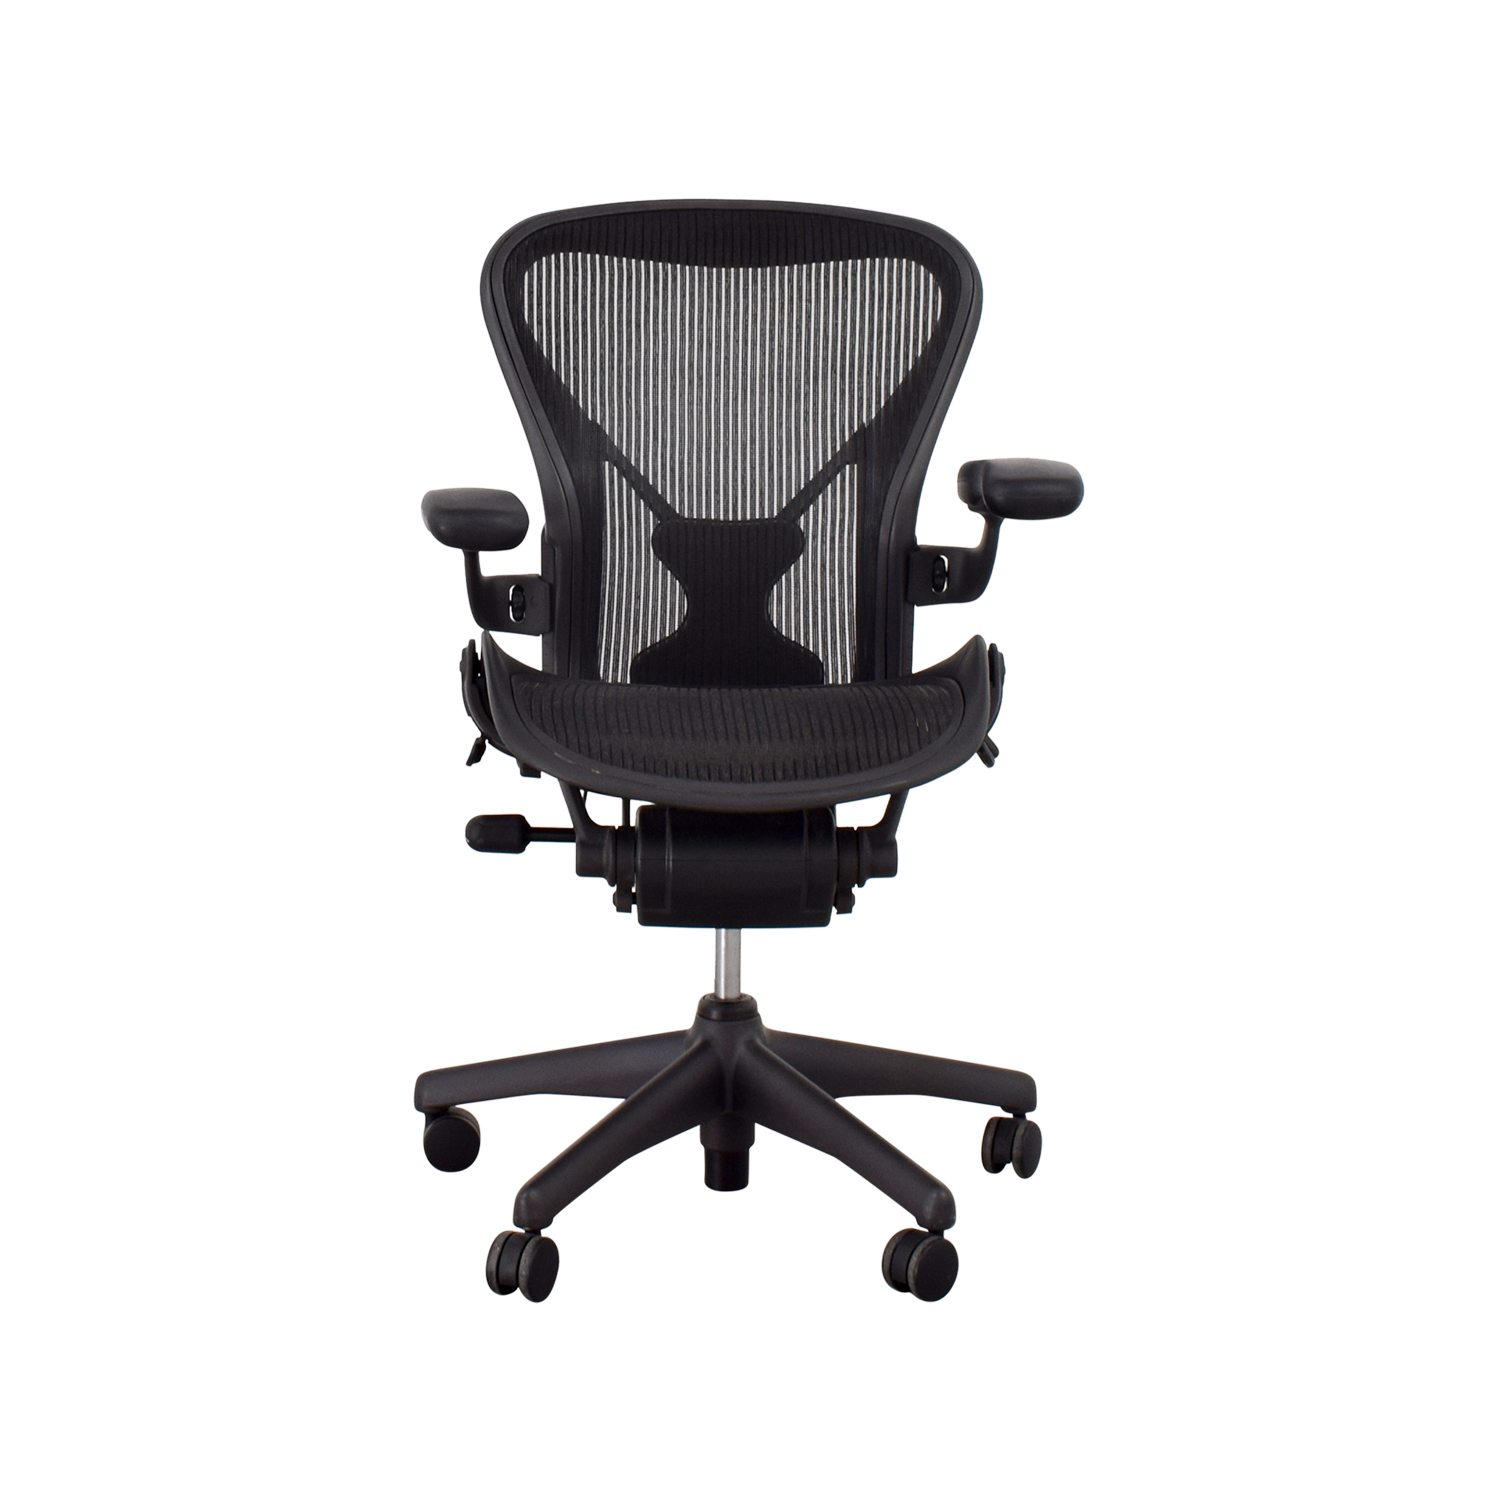 71 off herman miller herman miller aeron task chair. Black Bedroom Furniture Sets. Home Design Ideas